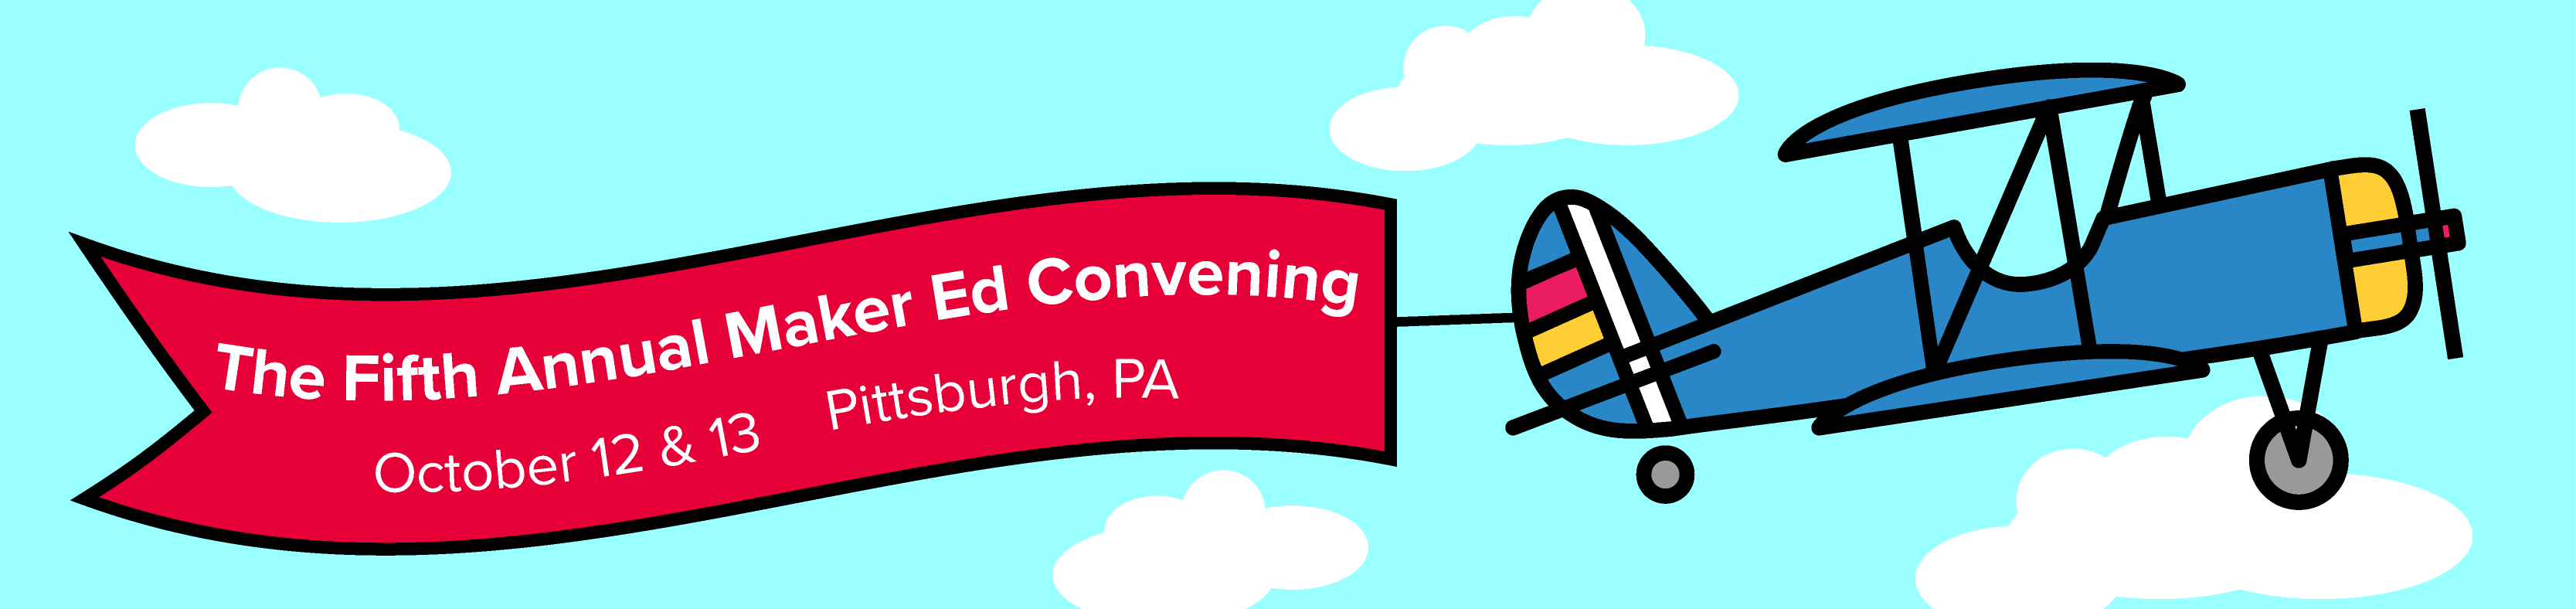 Maker Ed Convening October 12 & 13 Pittsburgh, PA